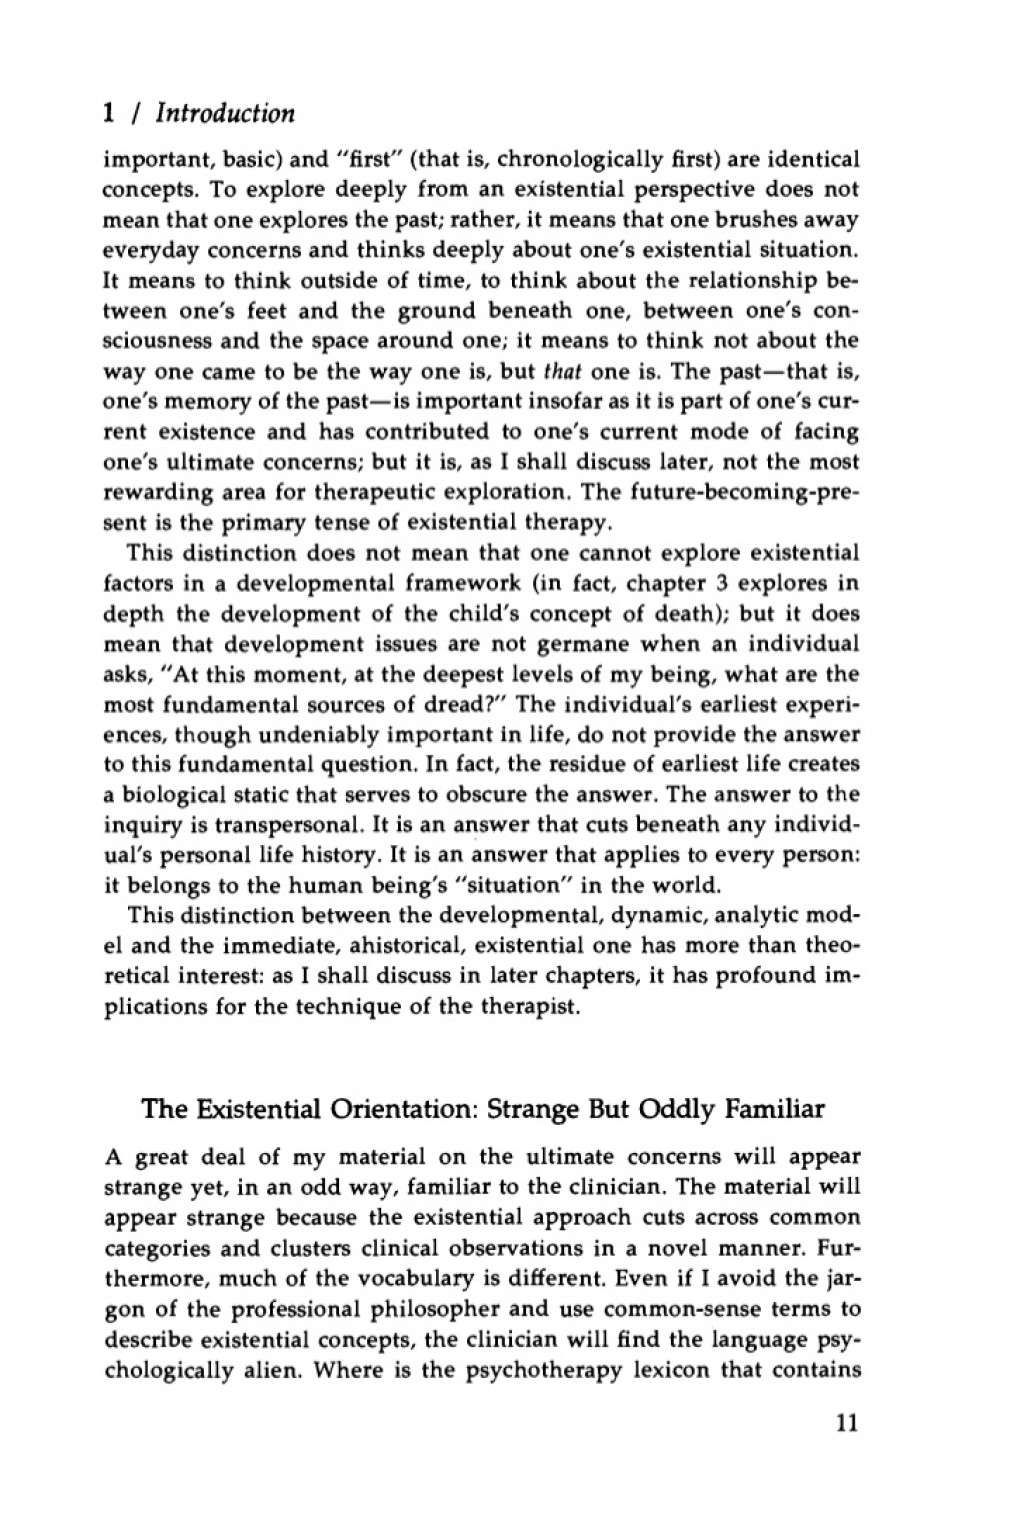 018 About Me Essay Essays On Yourself How To Write Leadership For App Existential Psychotherapy An Someone Argumentative Reddit Meme Please Uk Cheap Meaning Phenomenal Titles Social Media Medical Assistant Medicine Large